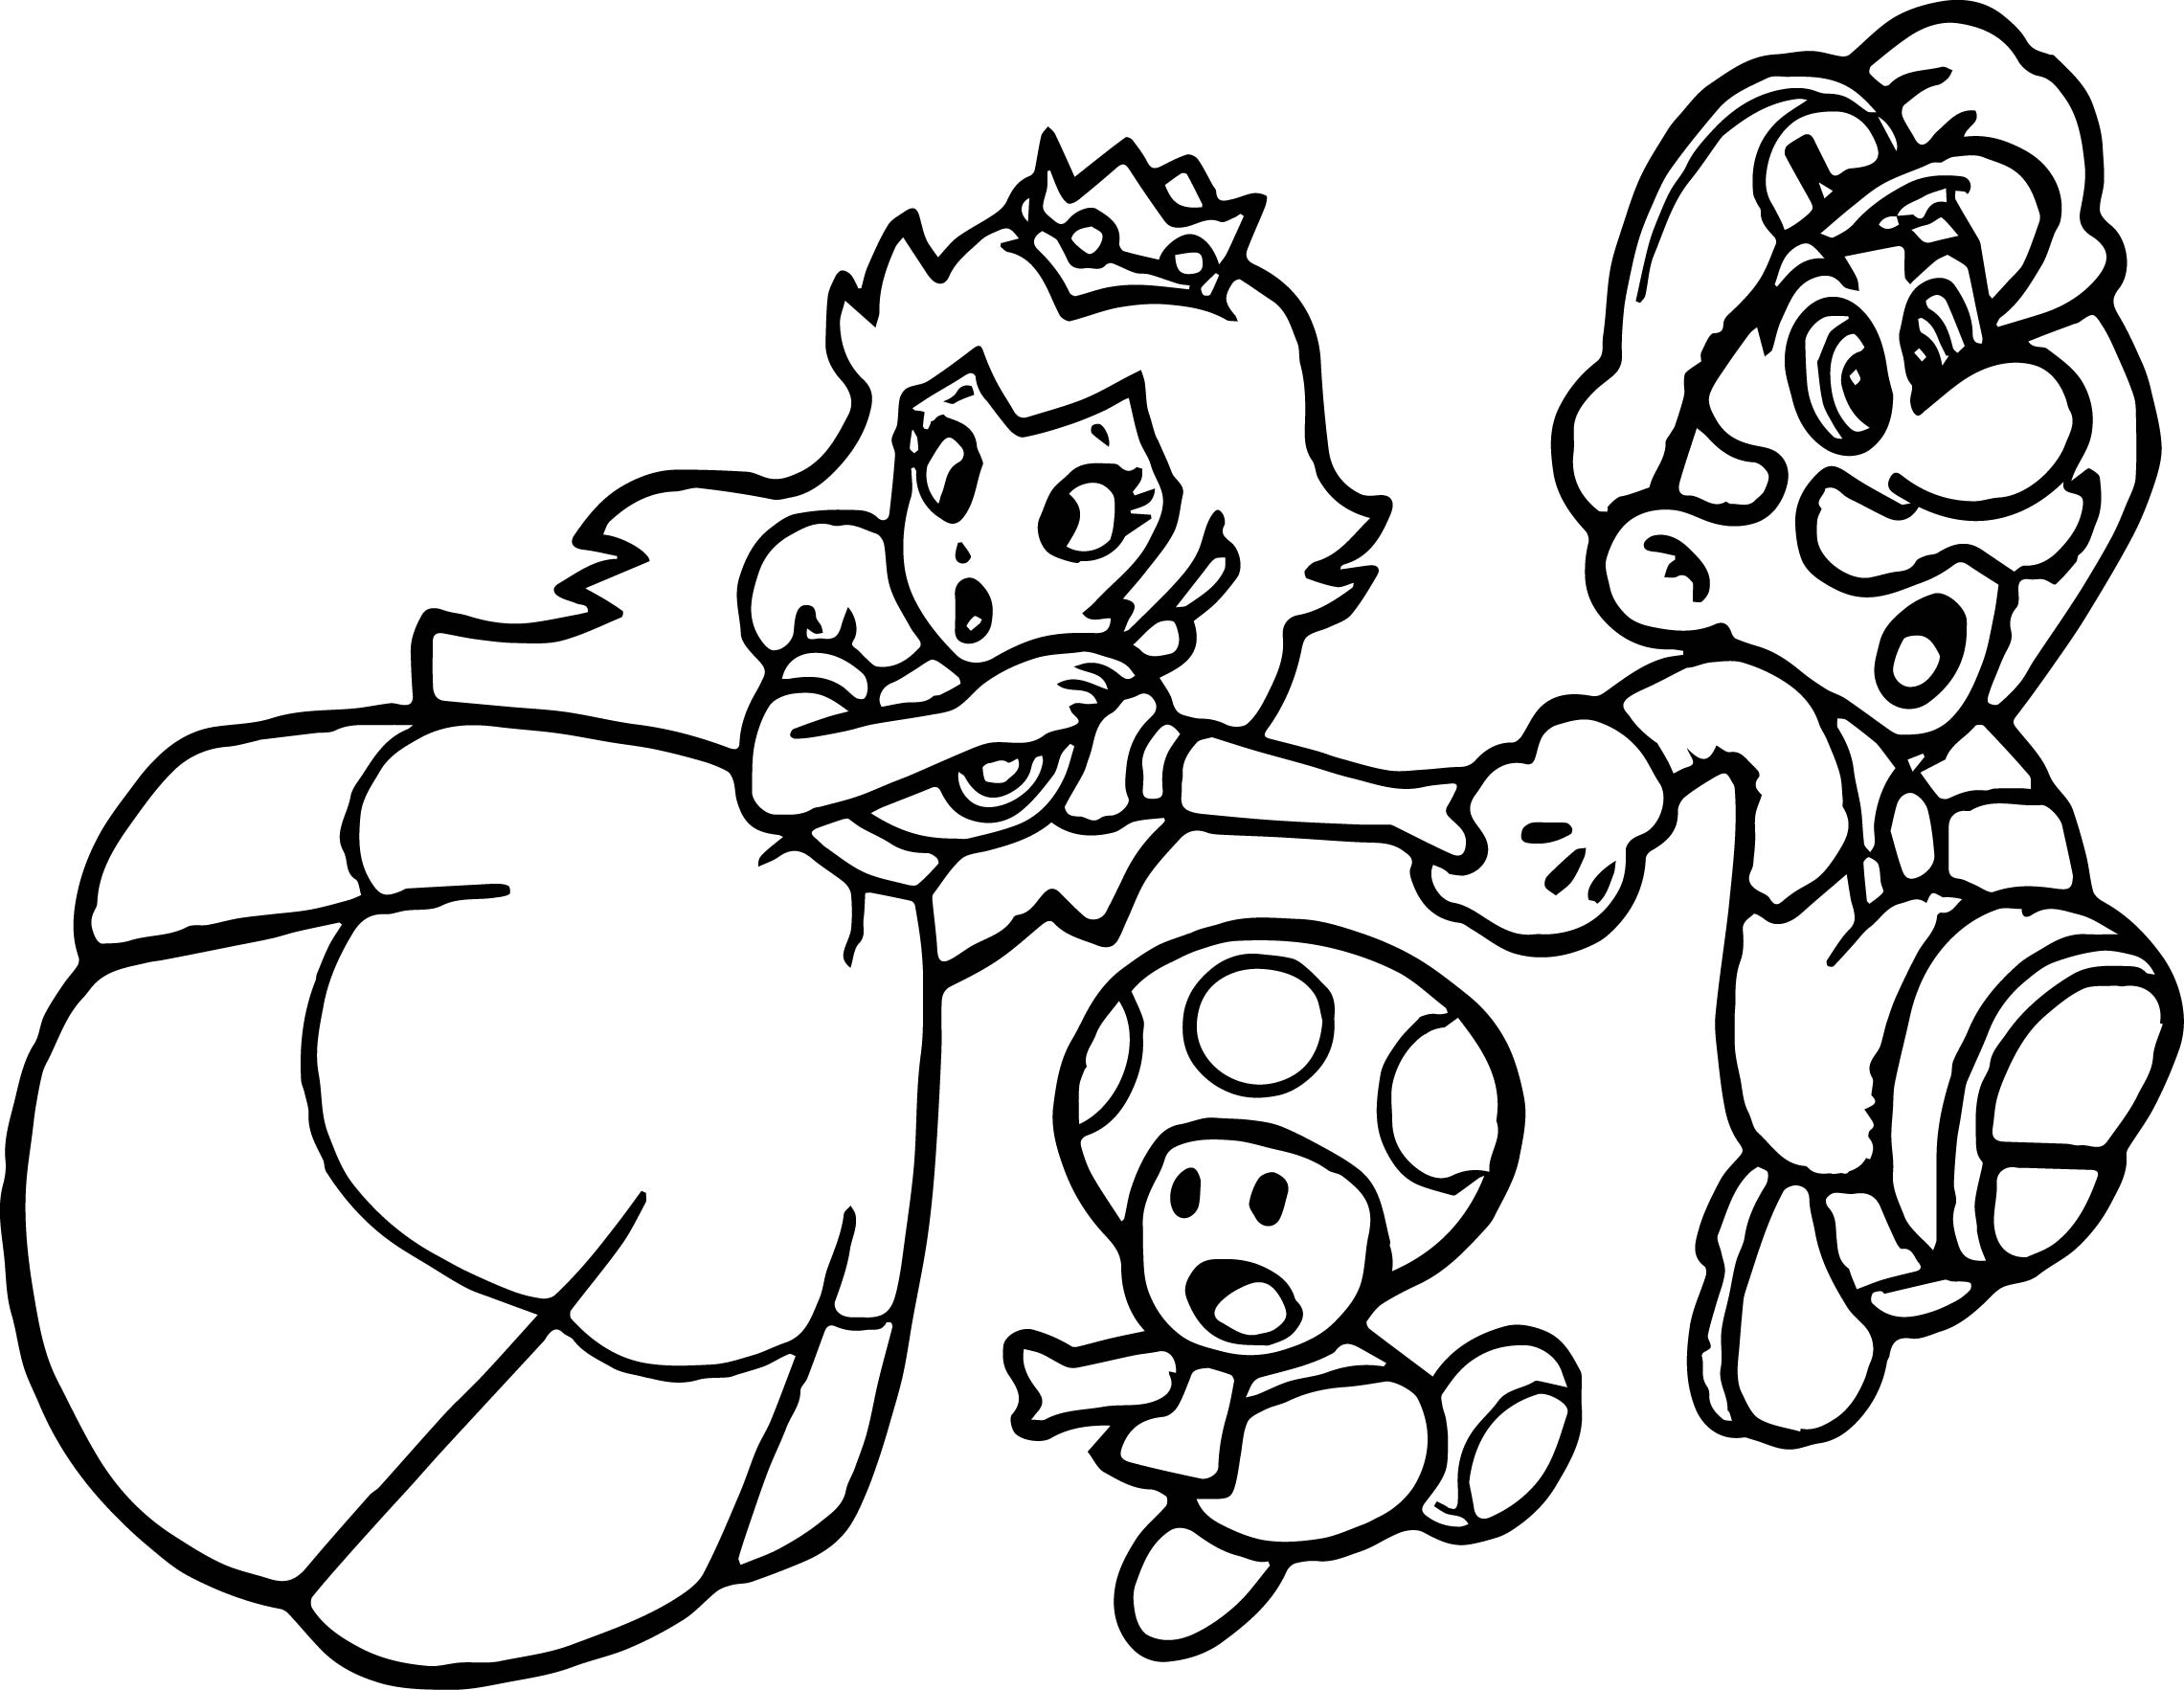 coloring mario mario coloring pages themes best apps for kids mario coloring